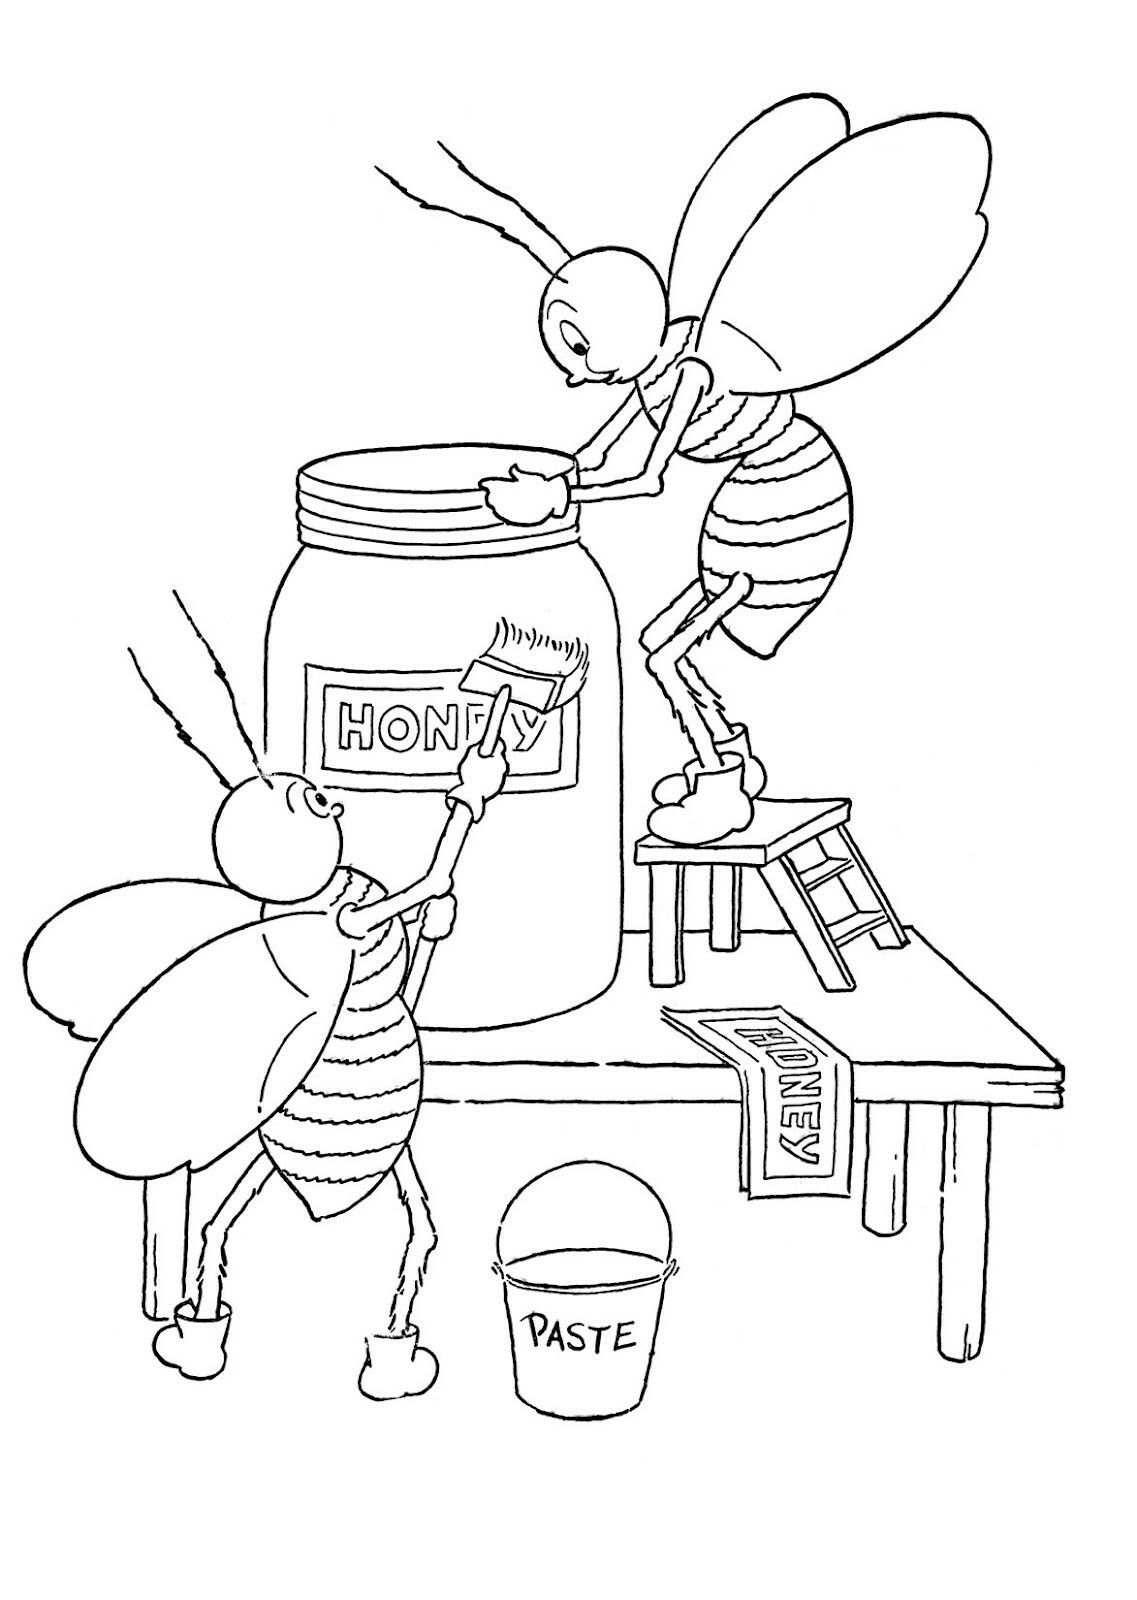 Pin By Melany Van Den Heever On Miod Bee Coloring Pages Bee Drawing Cartoon Coloring Pages